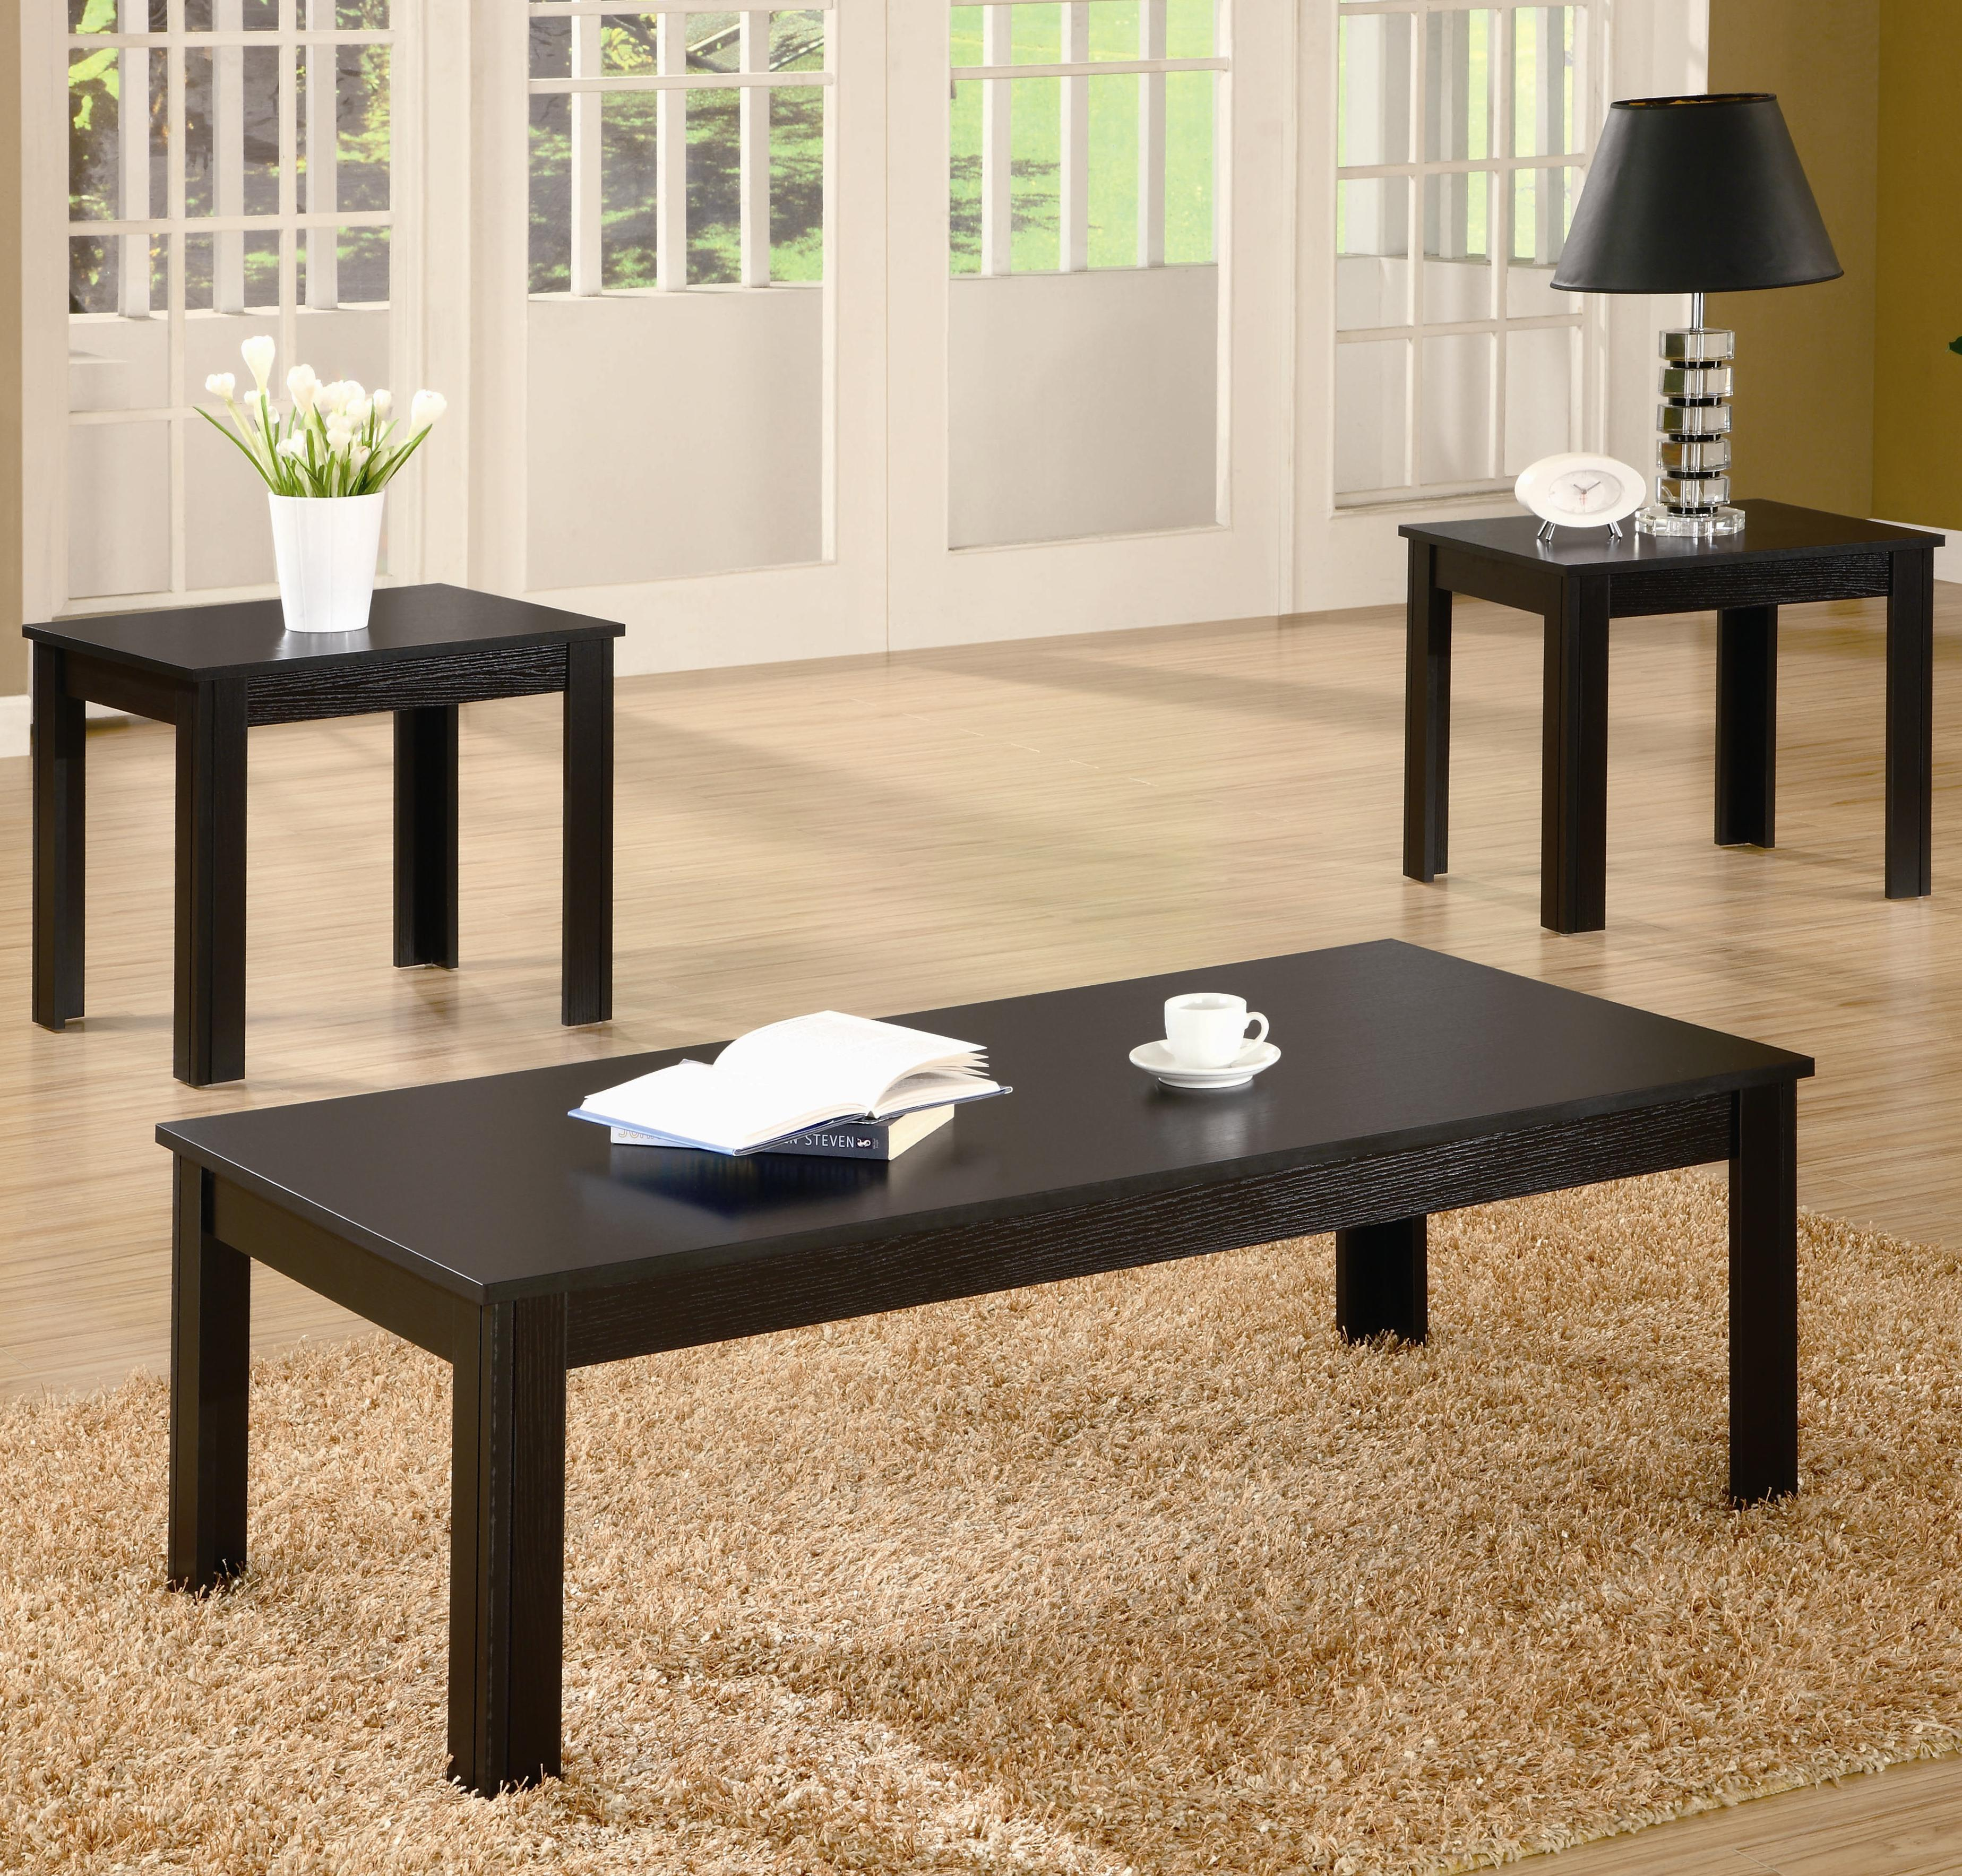 Coaster Occasional Table Sets 3 Piece Table Set - Item Number: 700225